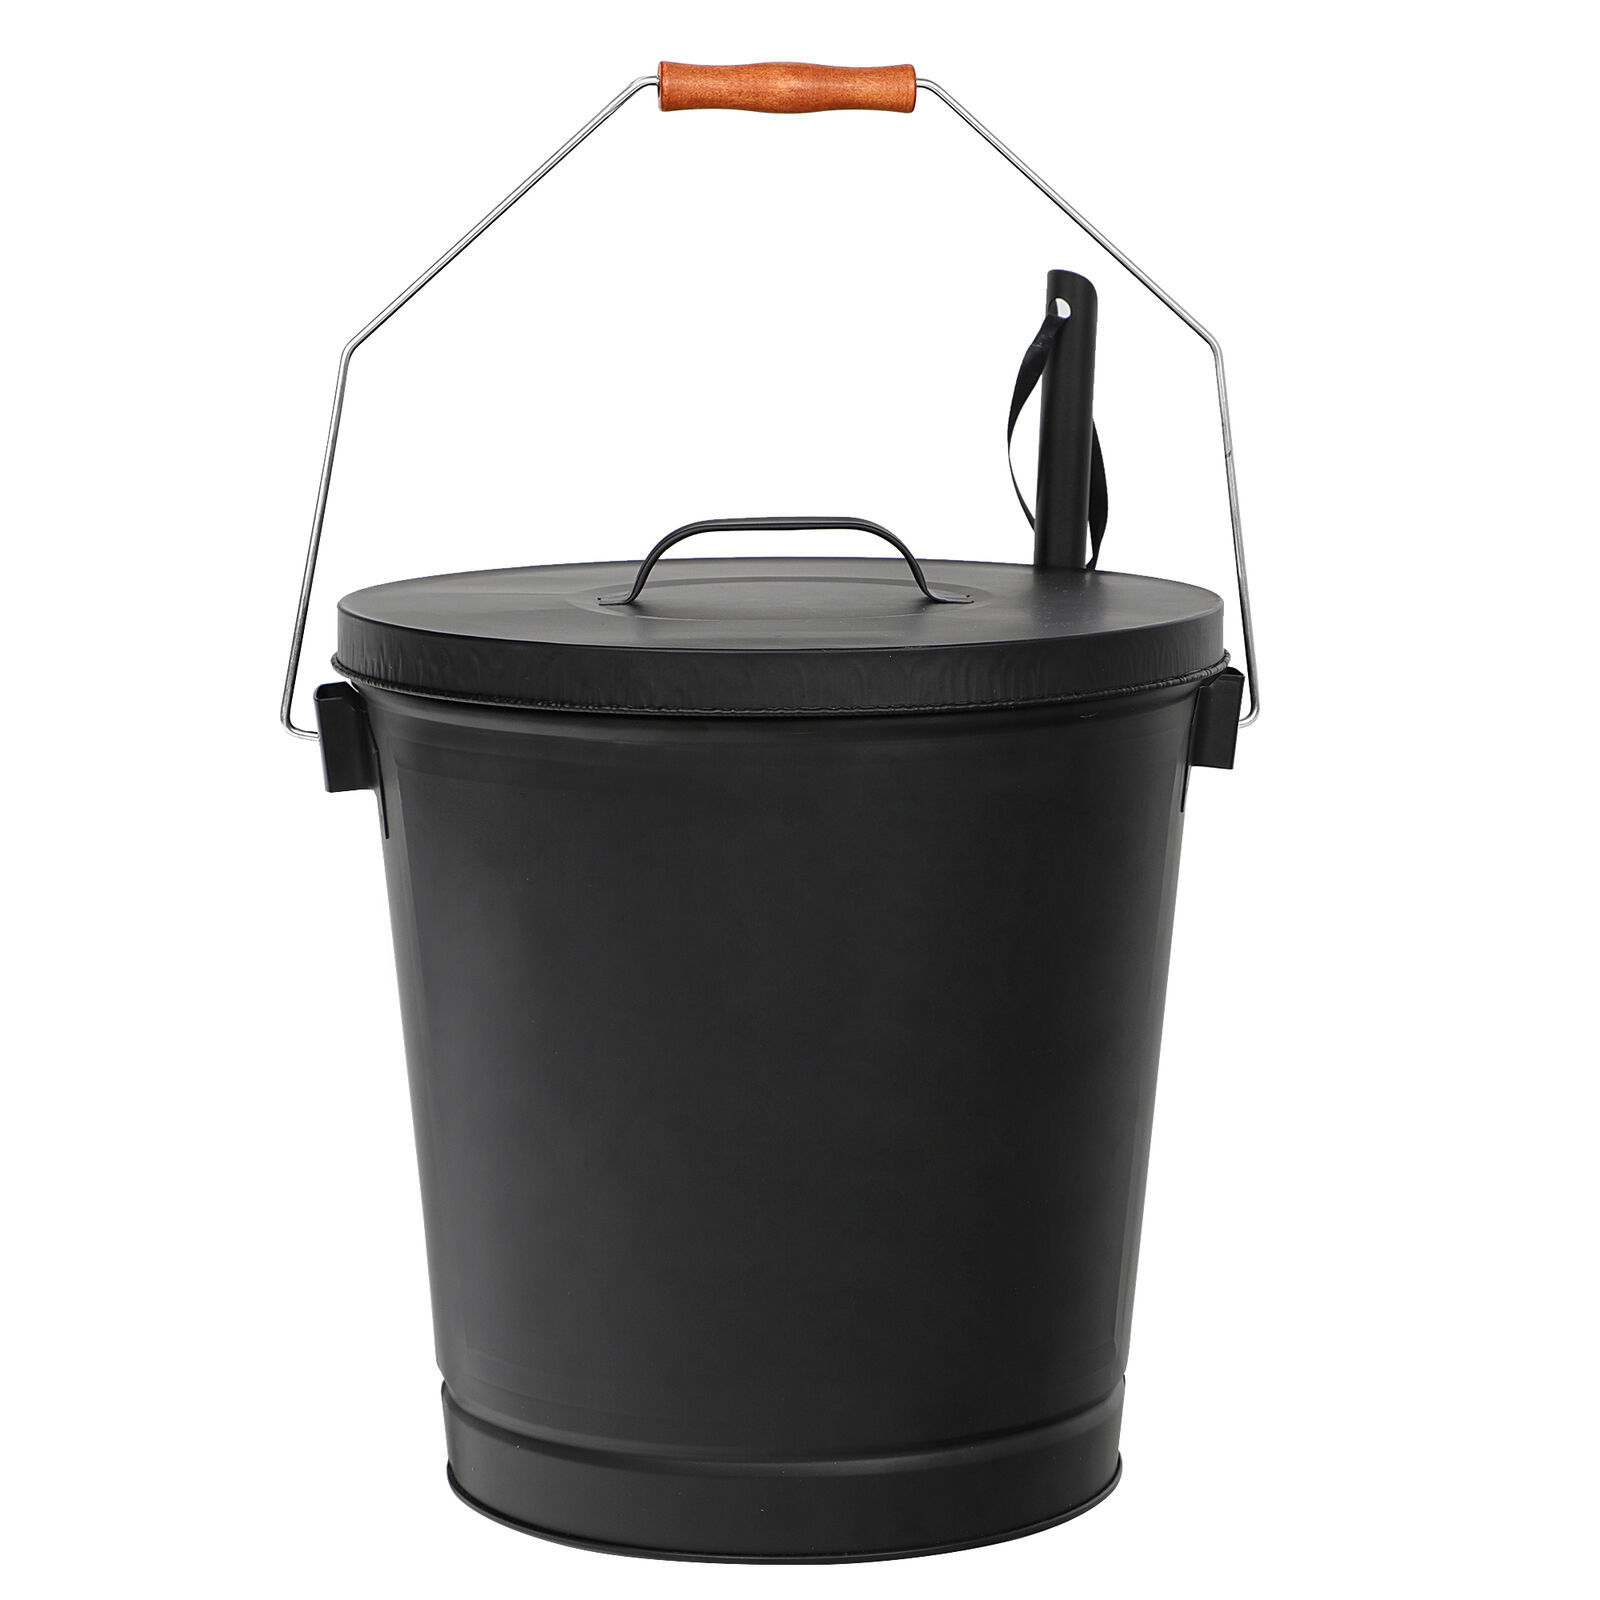 5 Gallon Black Ash Bucket with Lid and Shovel For Fireplaces Fire Pits Stoves Fireplaces & Stoves